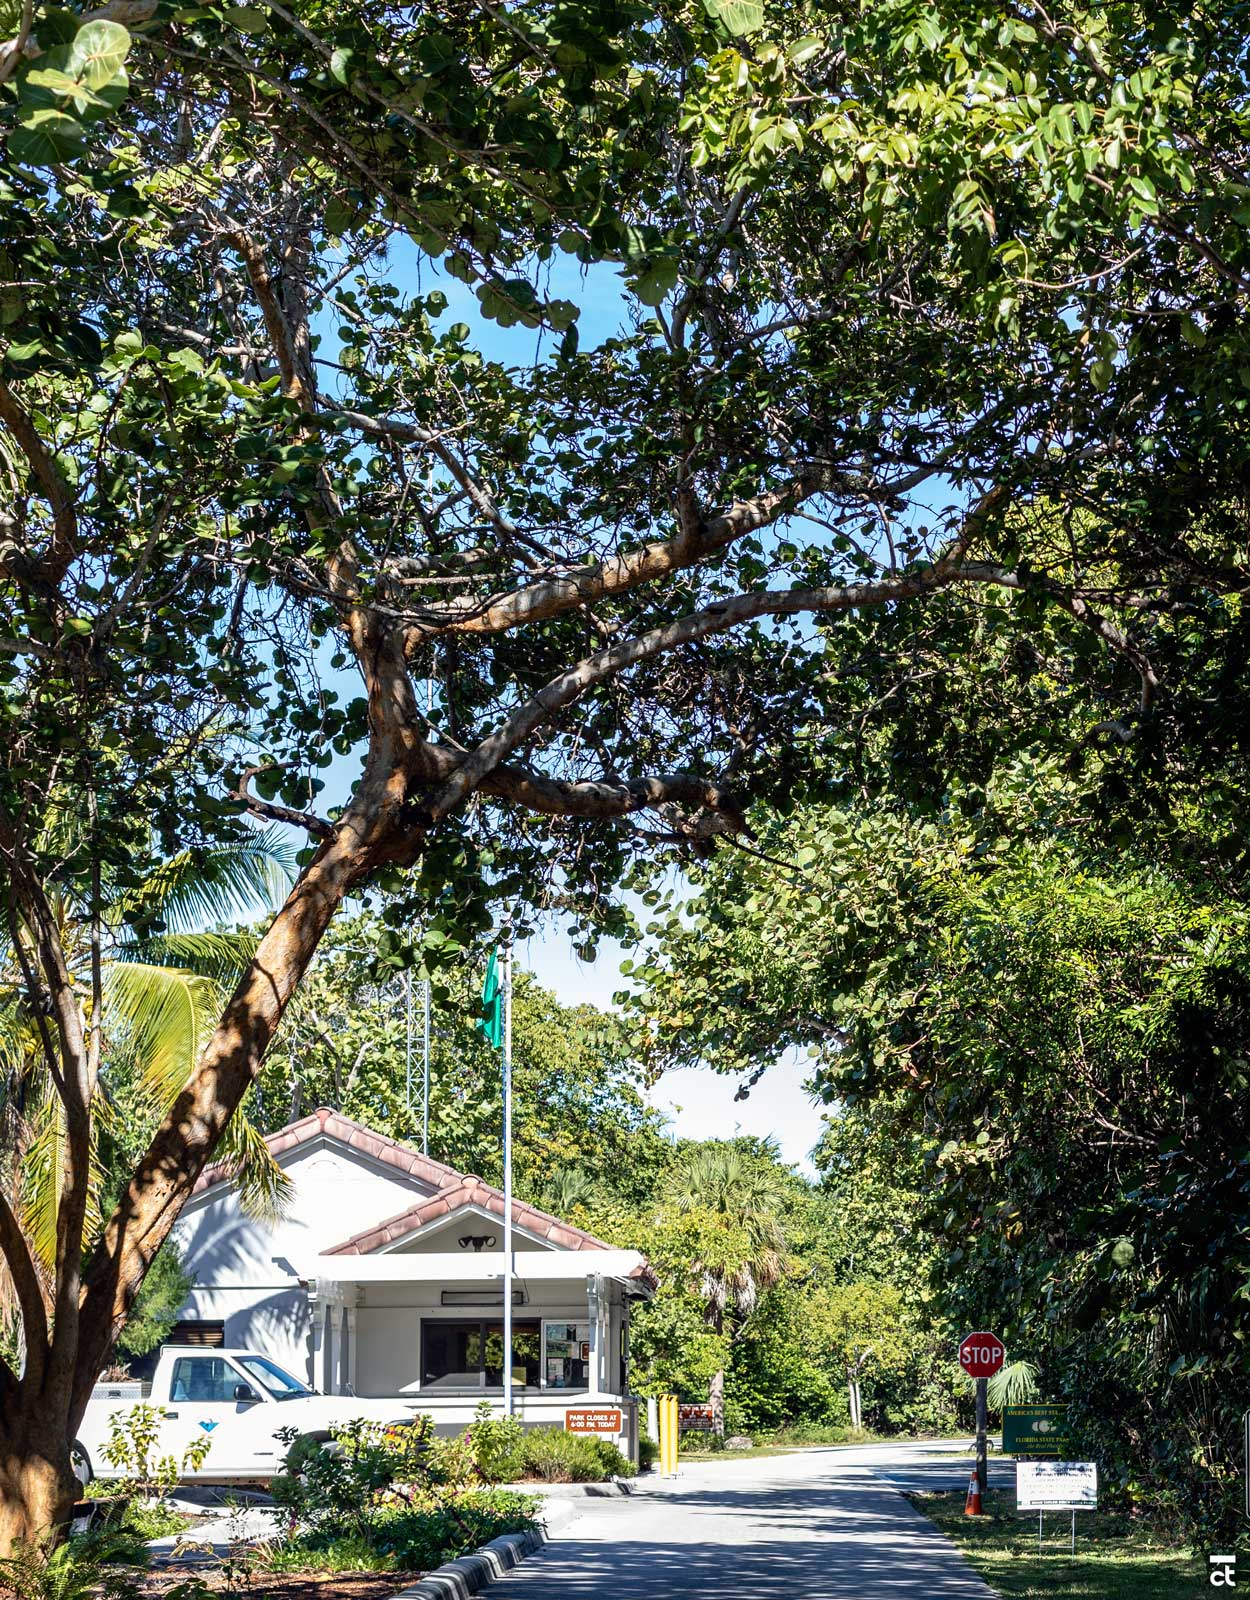 HUGH TAYLOR BIRCH STATE PARK - Fort Lauderdale Travel Guide: 25 Things to Do in Fort Lauderdale, Florida - CHRISTOBEL TRAVEL